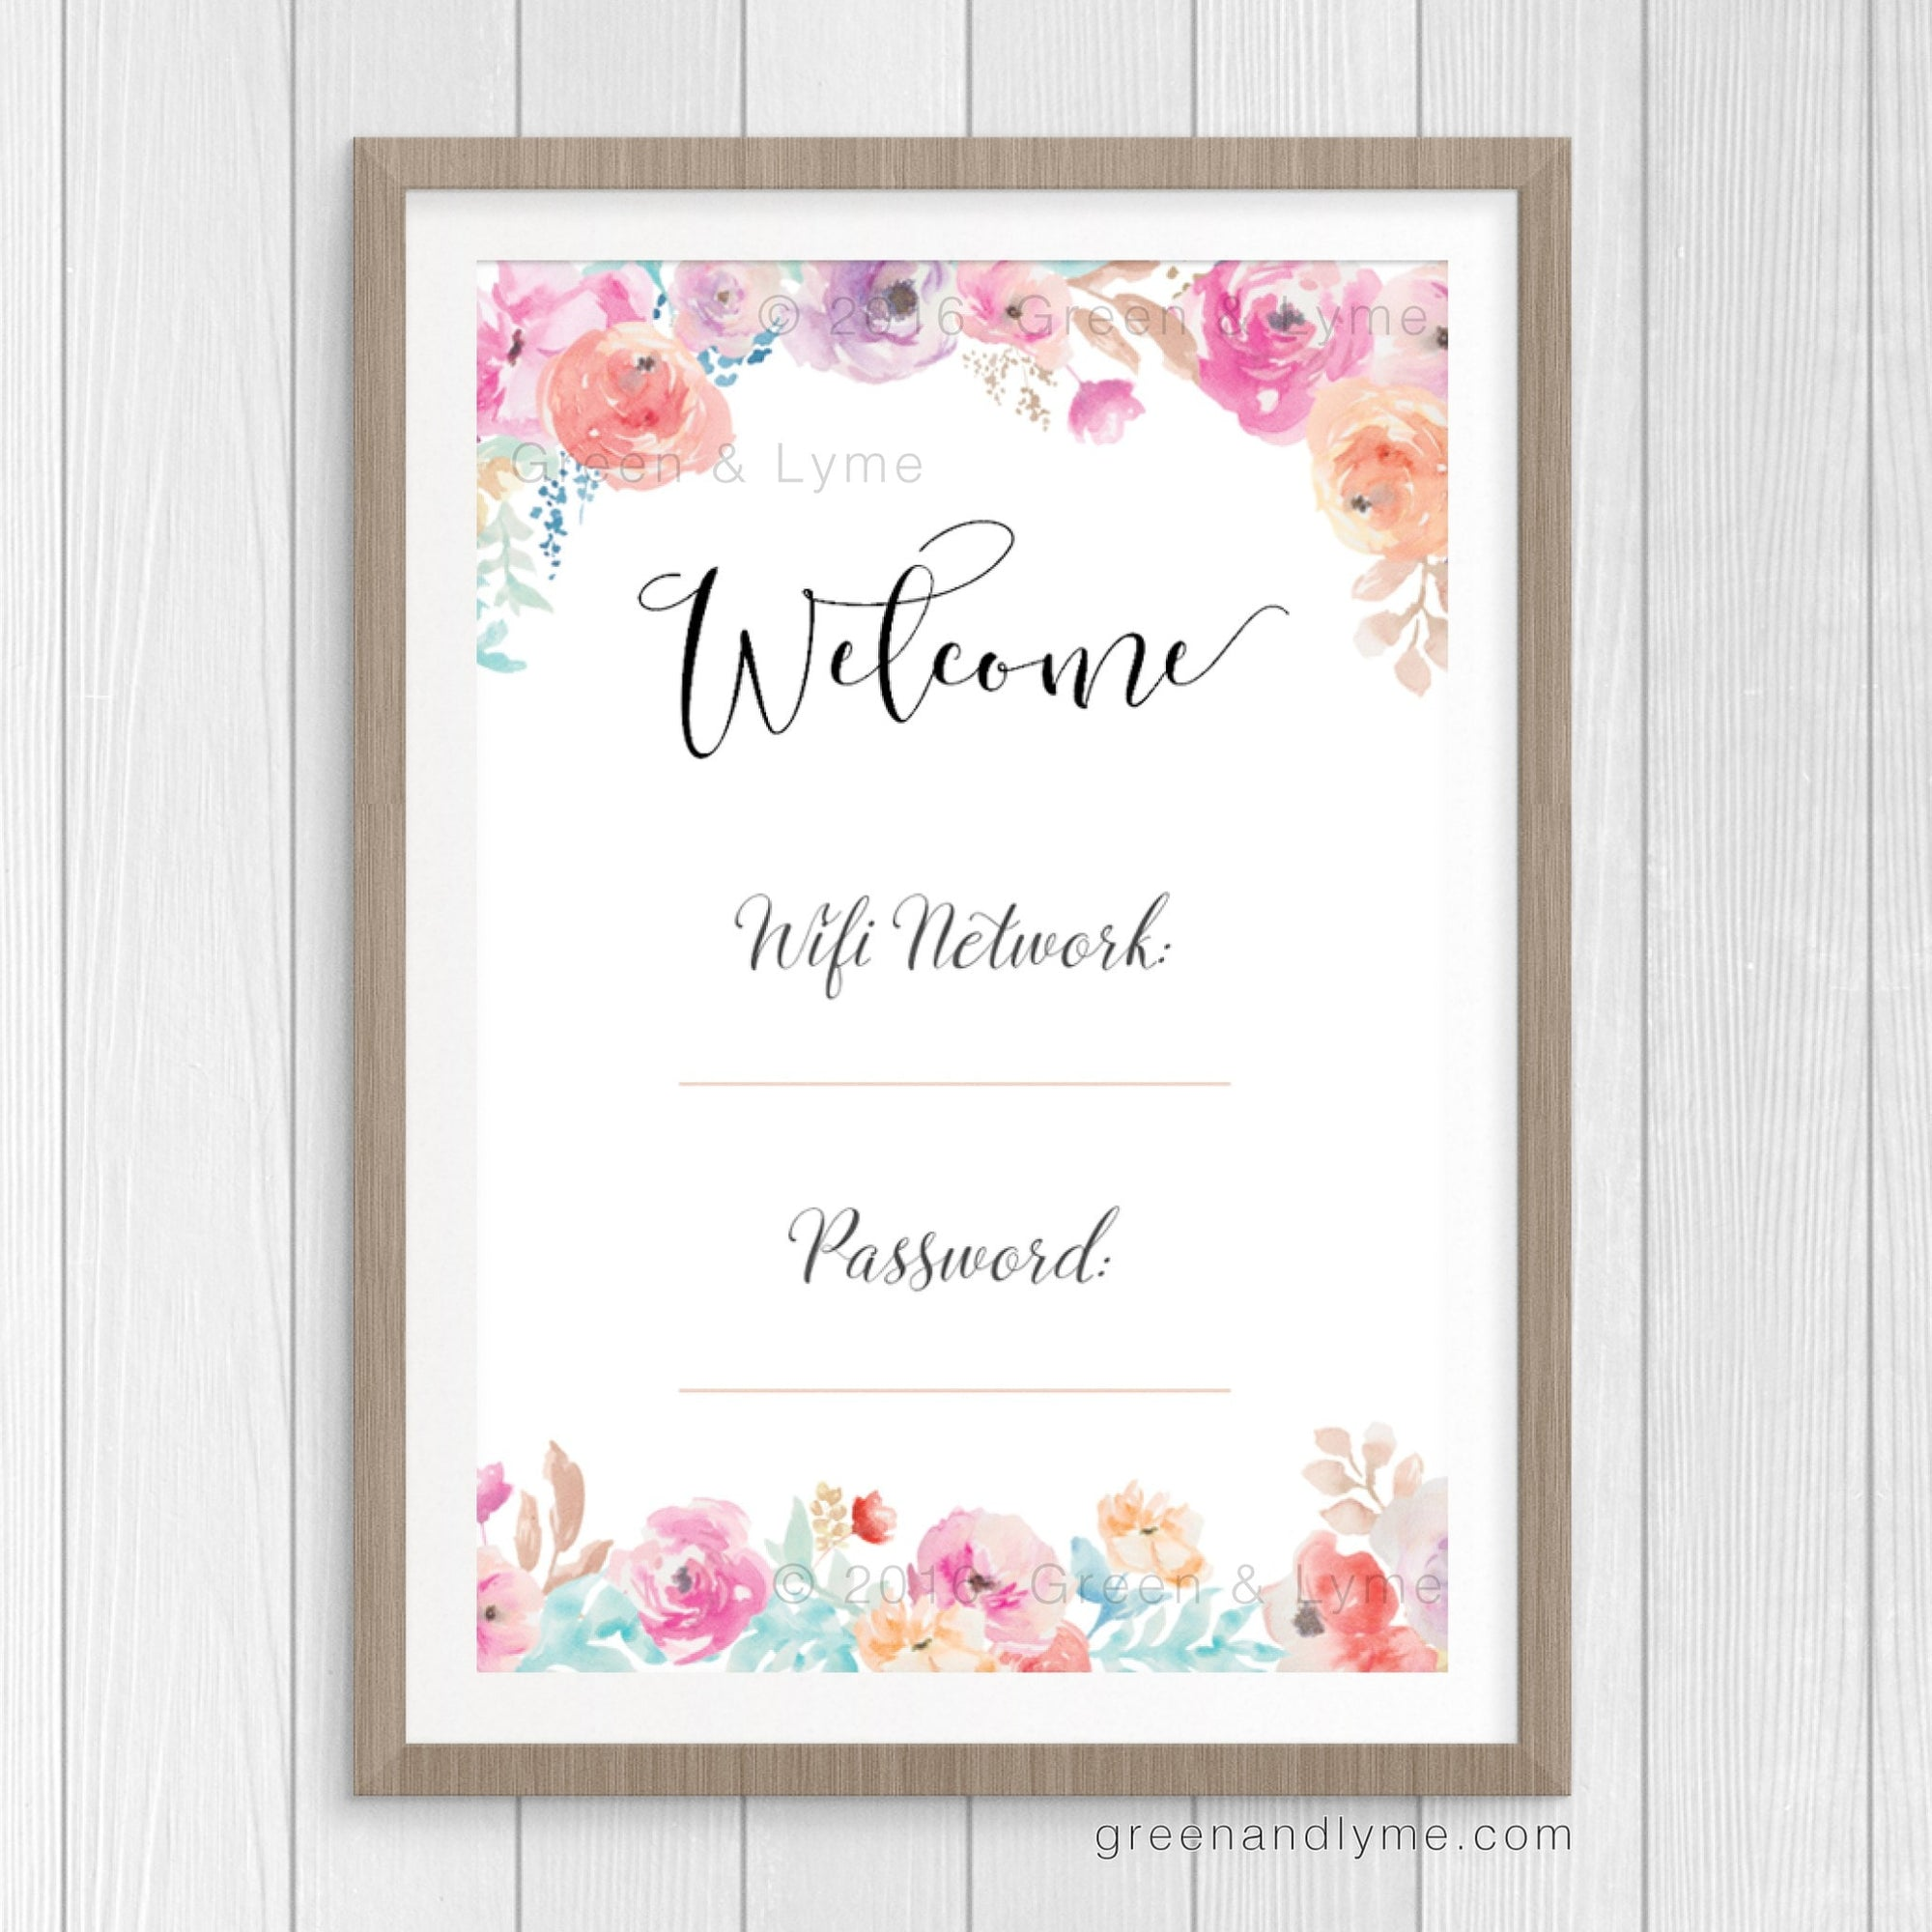 picture about Wifi Password Printable identify Printable Wall Artwork: Wifi Pword Print